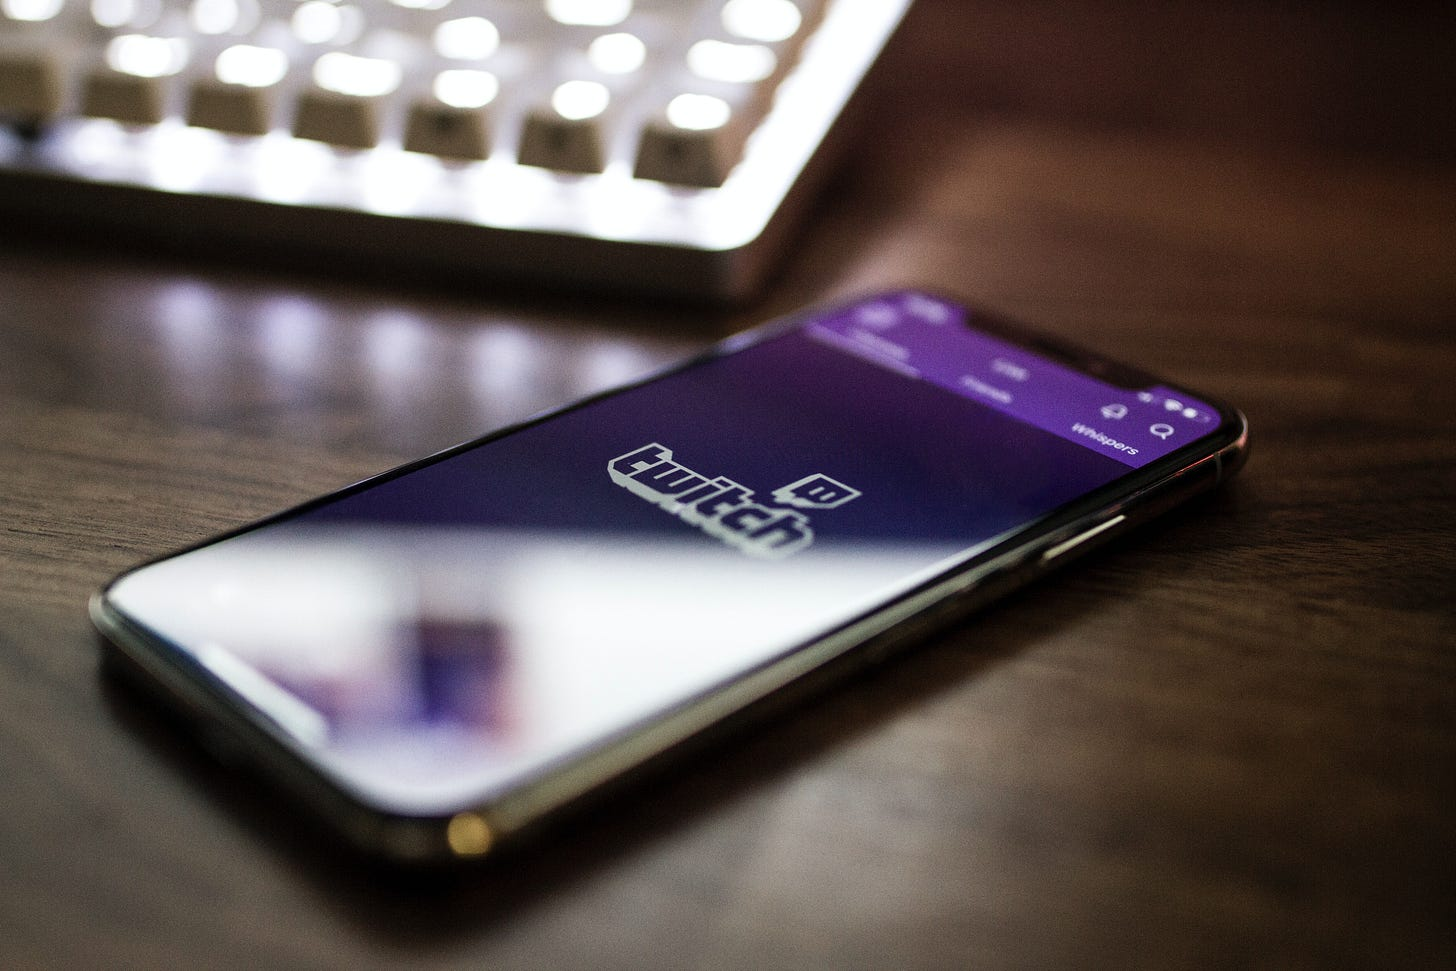 Twitch app shown on a phone laid on a desk. Caspar Camille Rubin / Unsplash